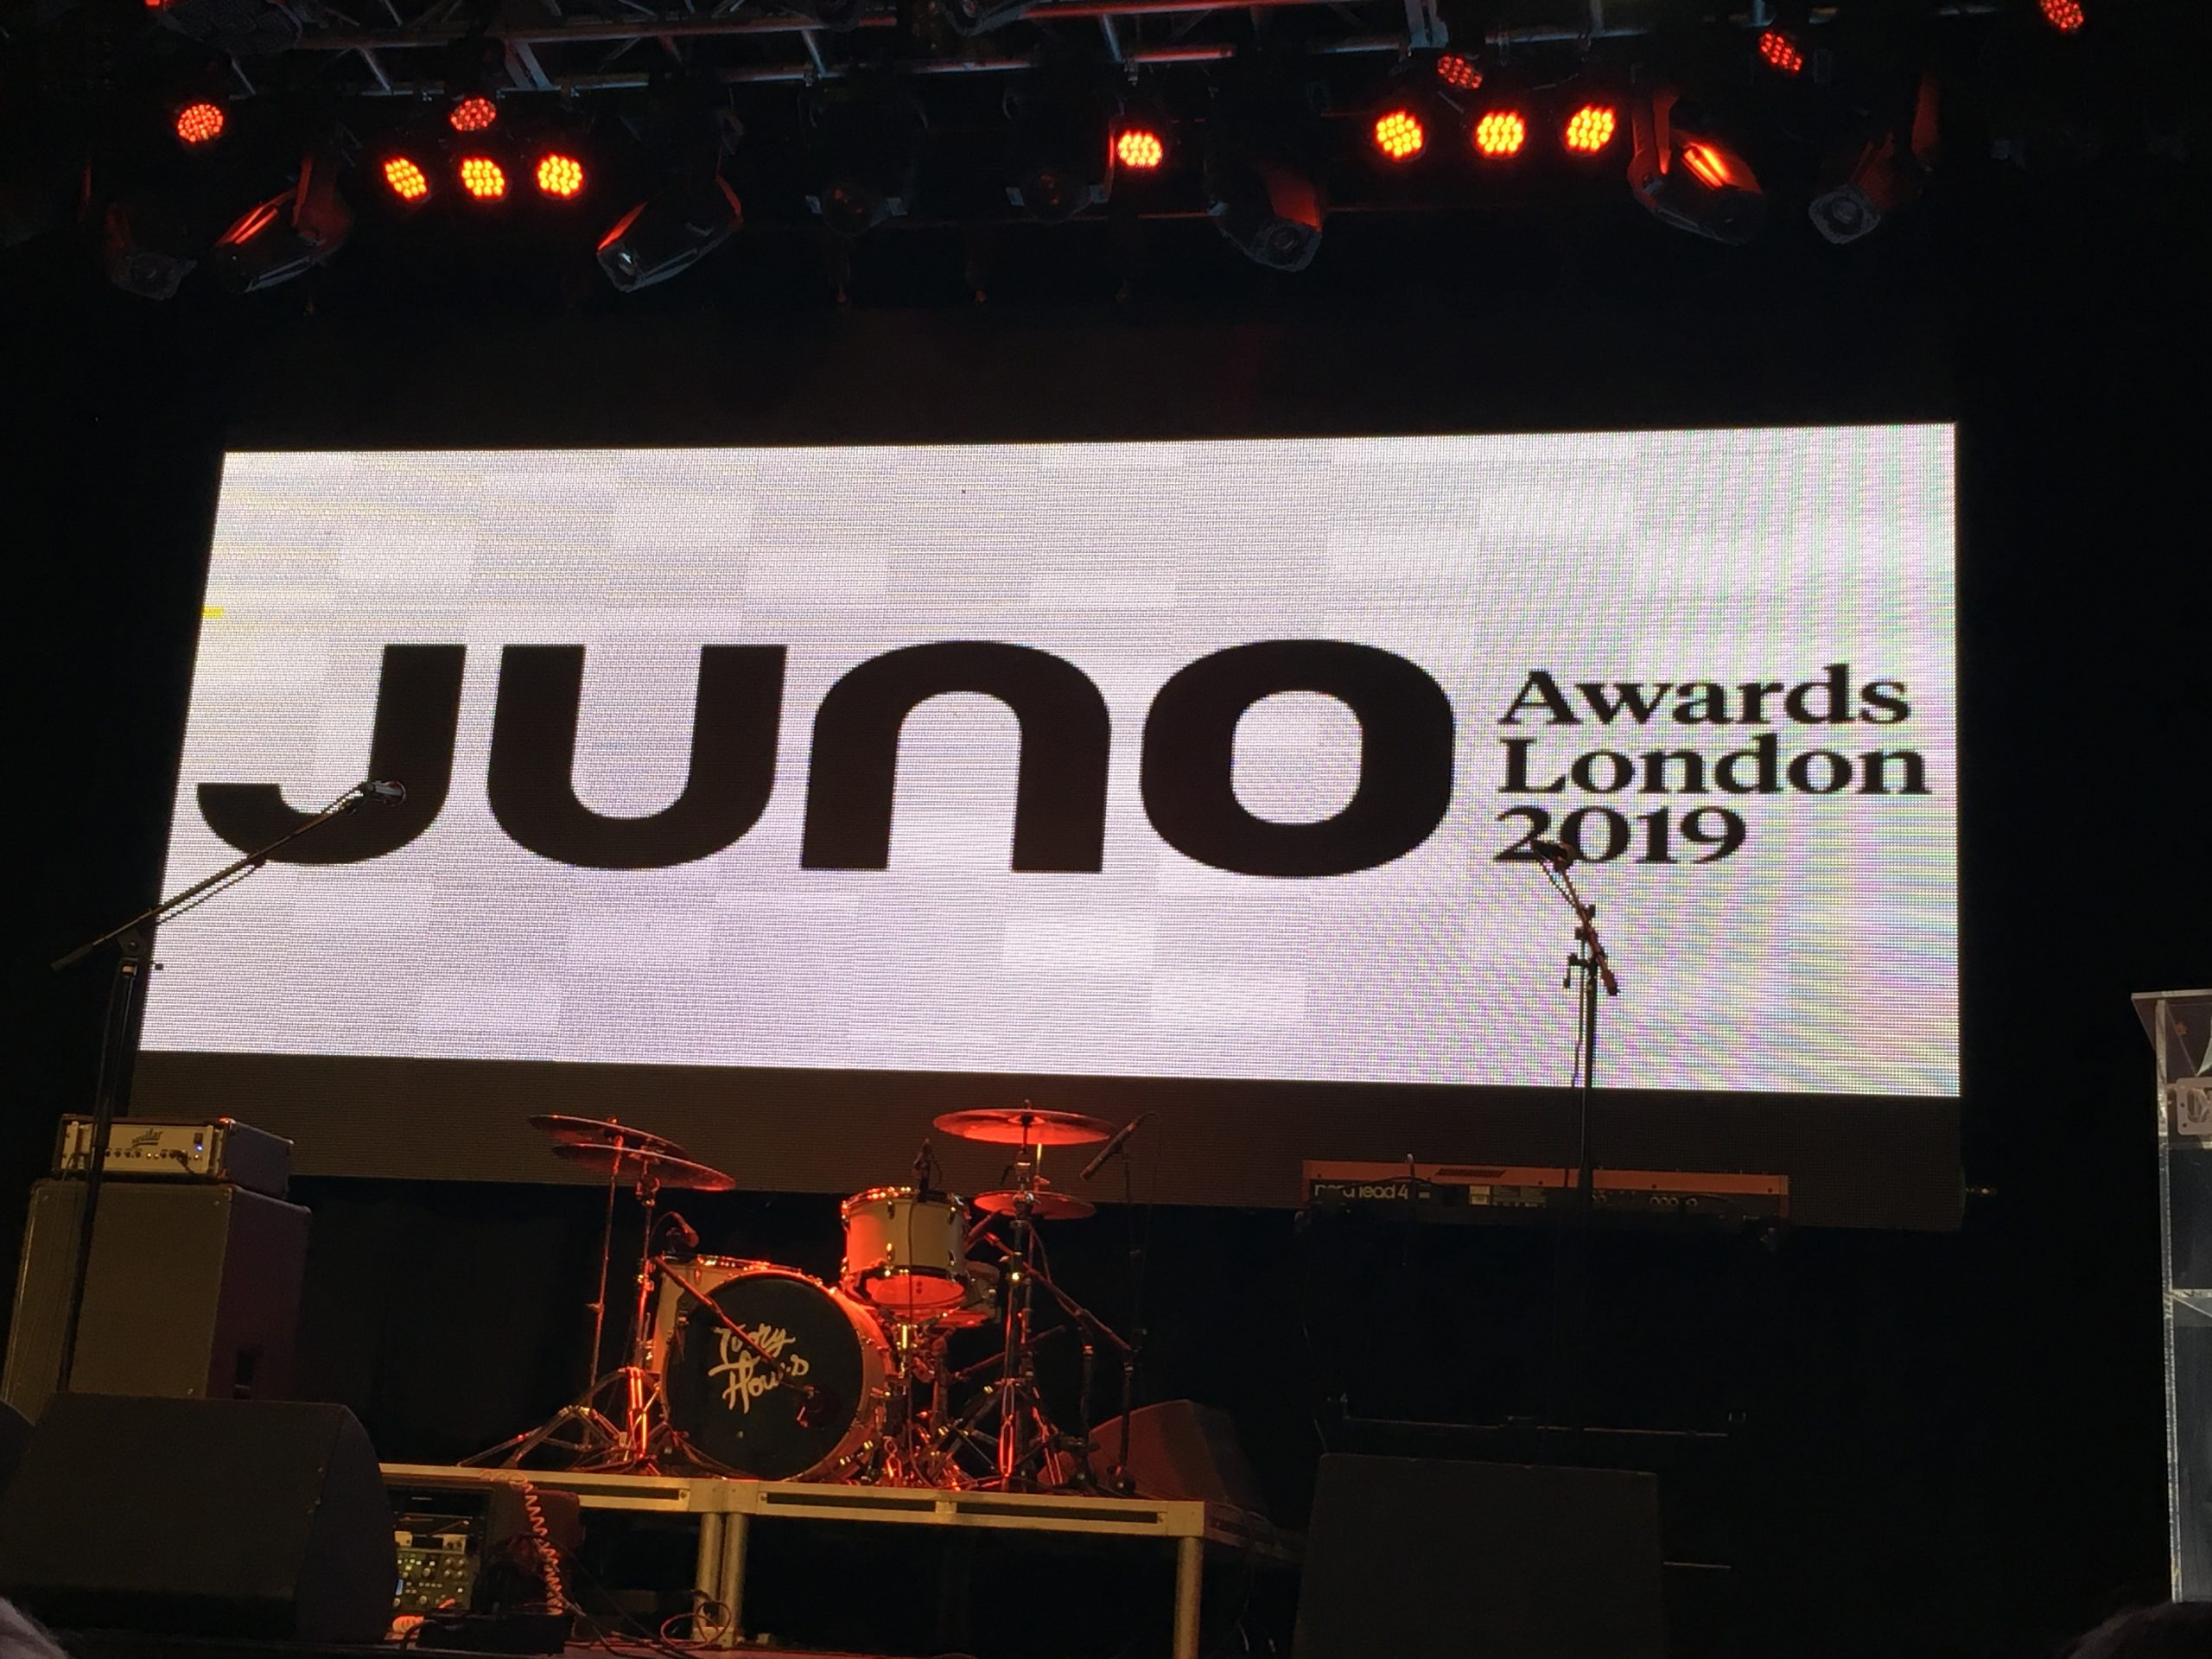 London will host 2019 Juno Awards